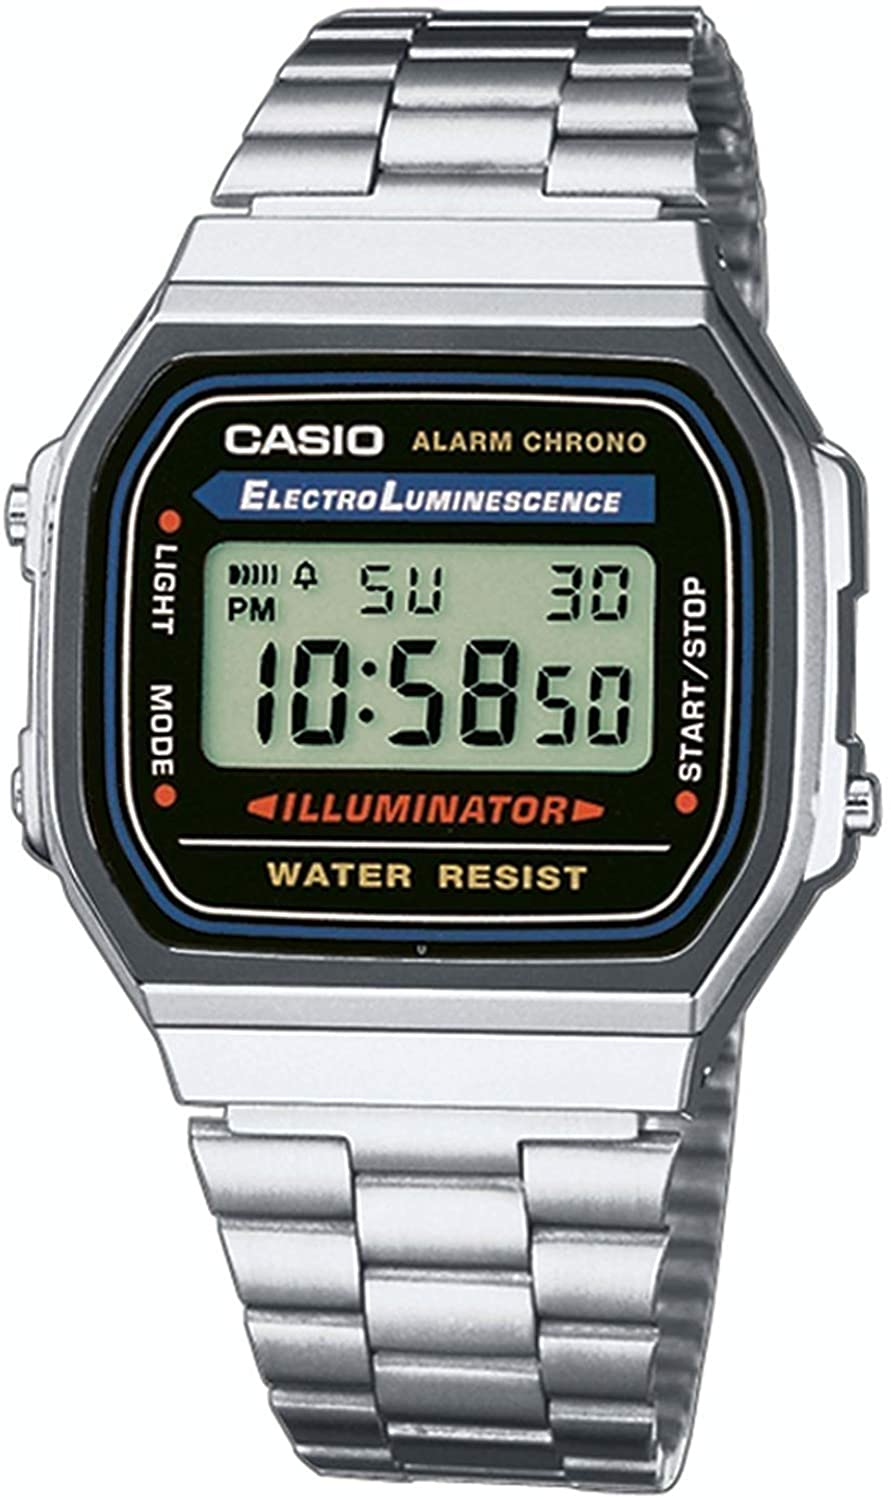 Casio Men's Vintage Luminescence Watch